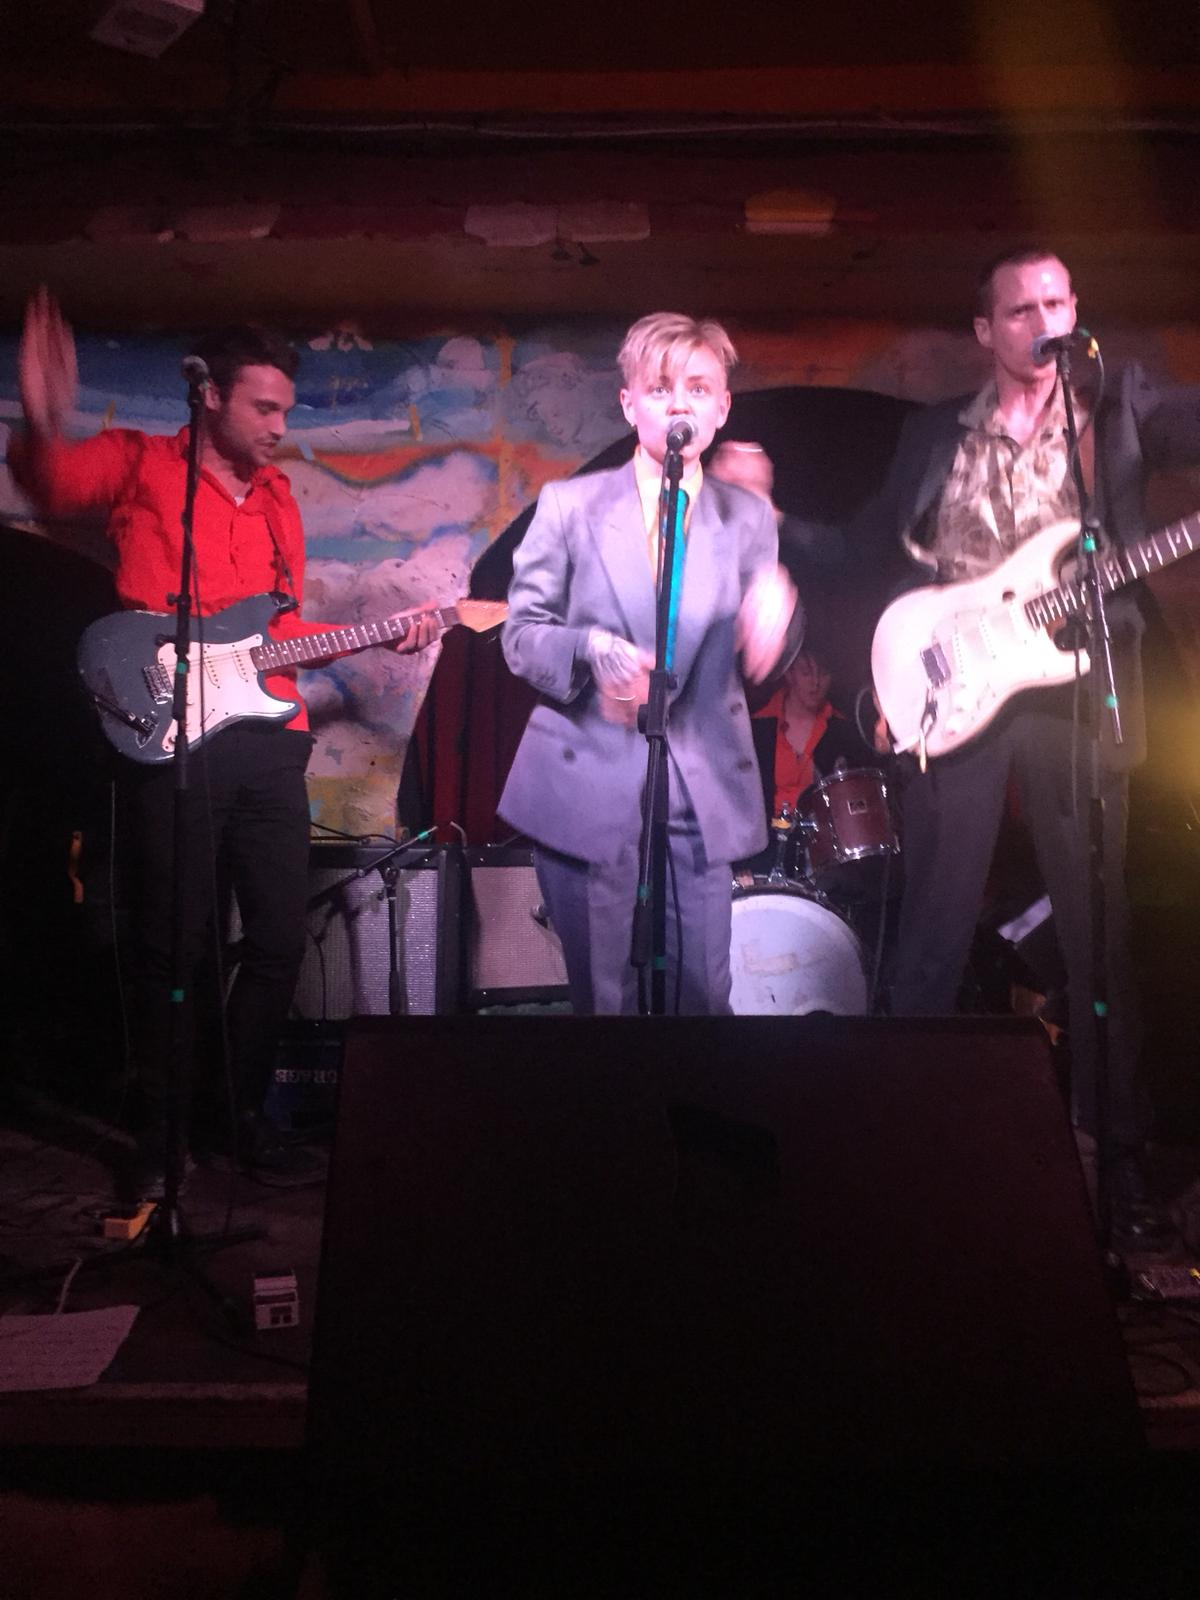 Meggie Brown on stage during their most recent show at The Shacklewell Arms